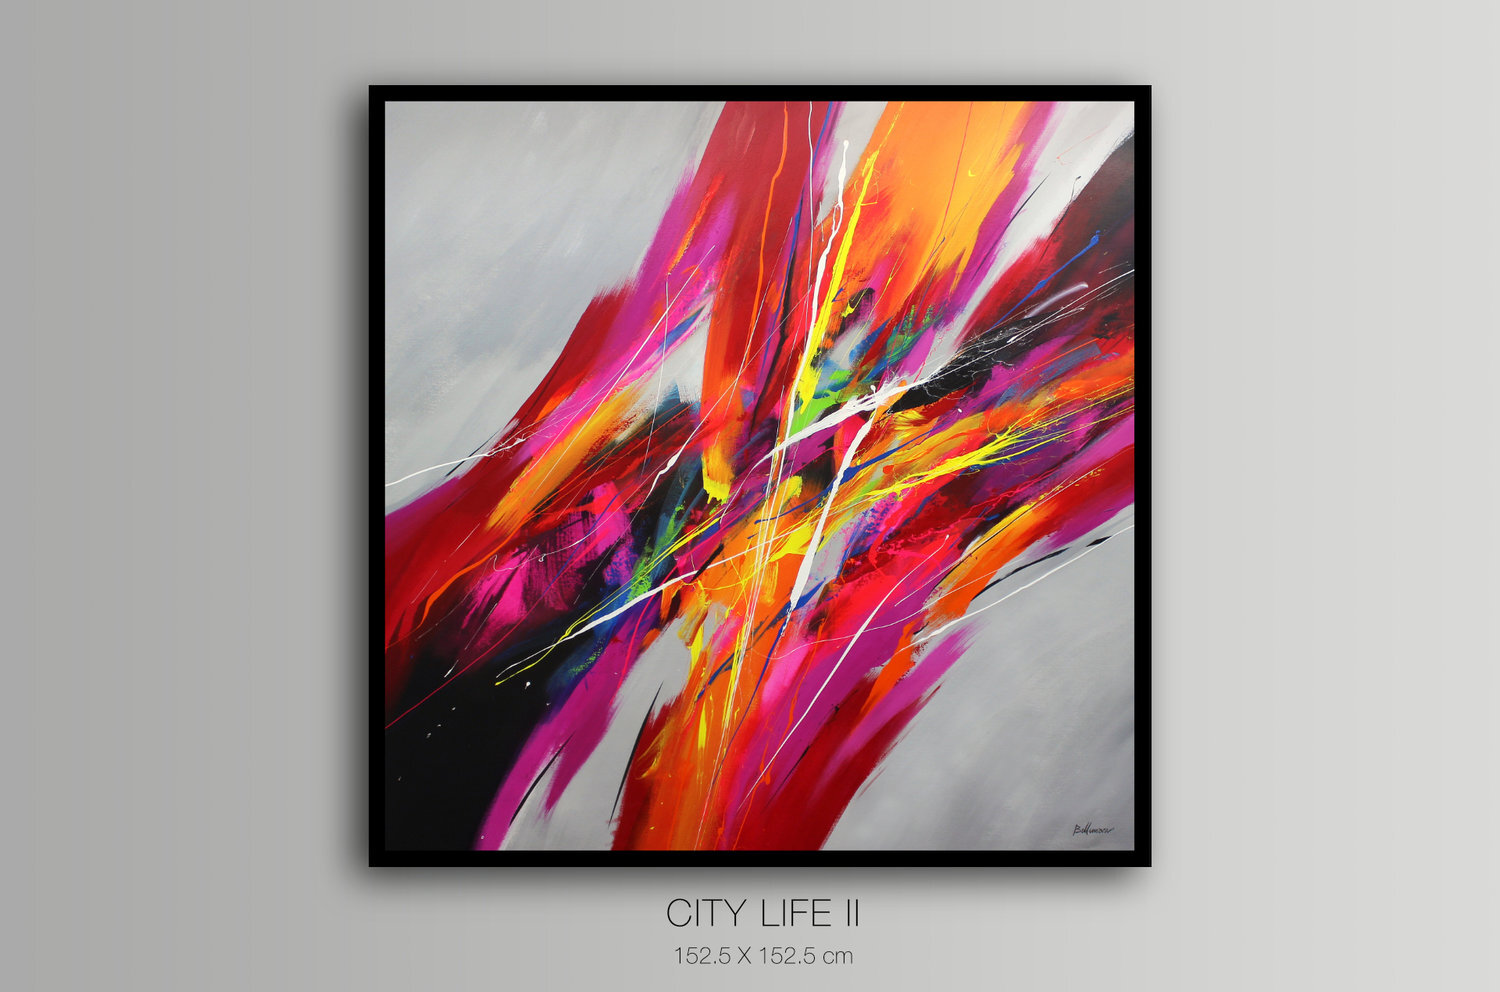 City Life II - Large Rythmik Collection